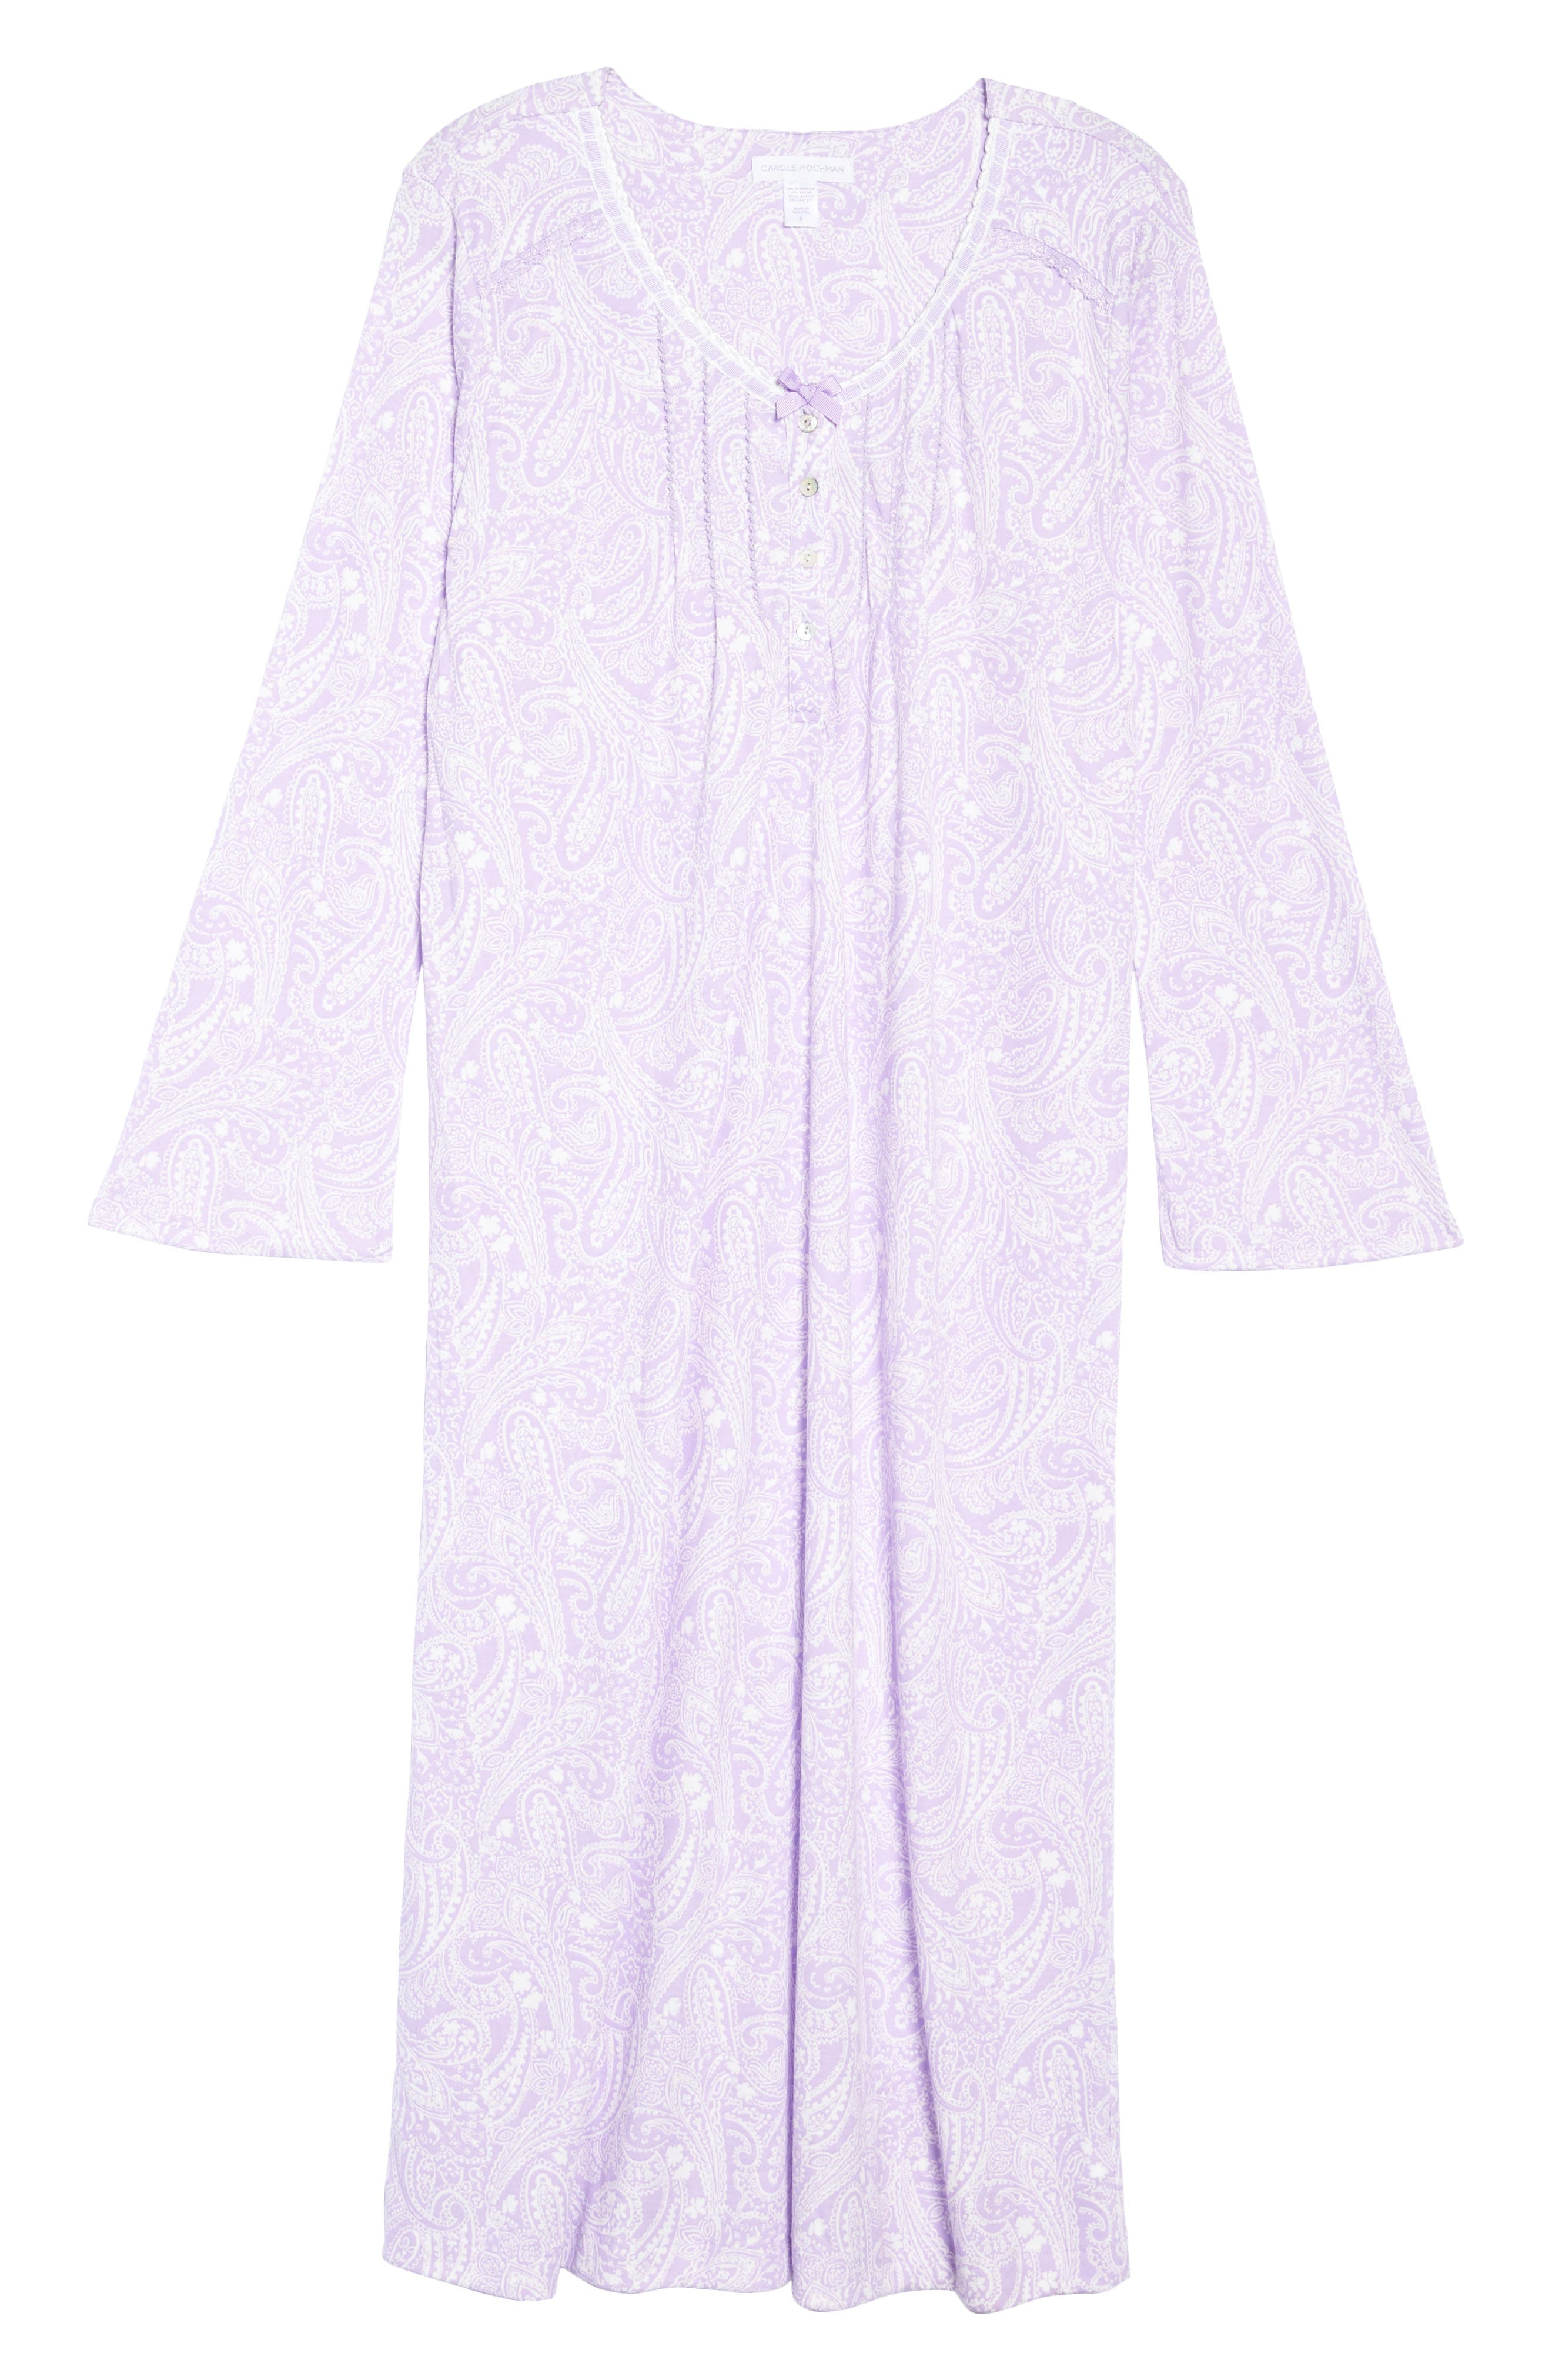 Long Nightgown,                             Alternate thumbnail 6, color,                             575